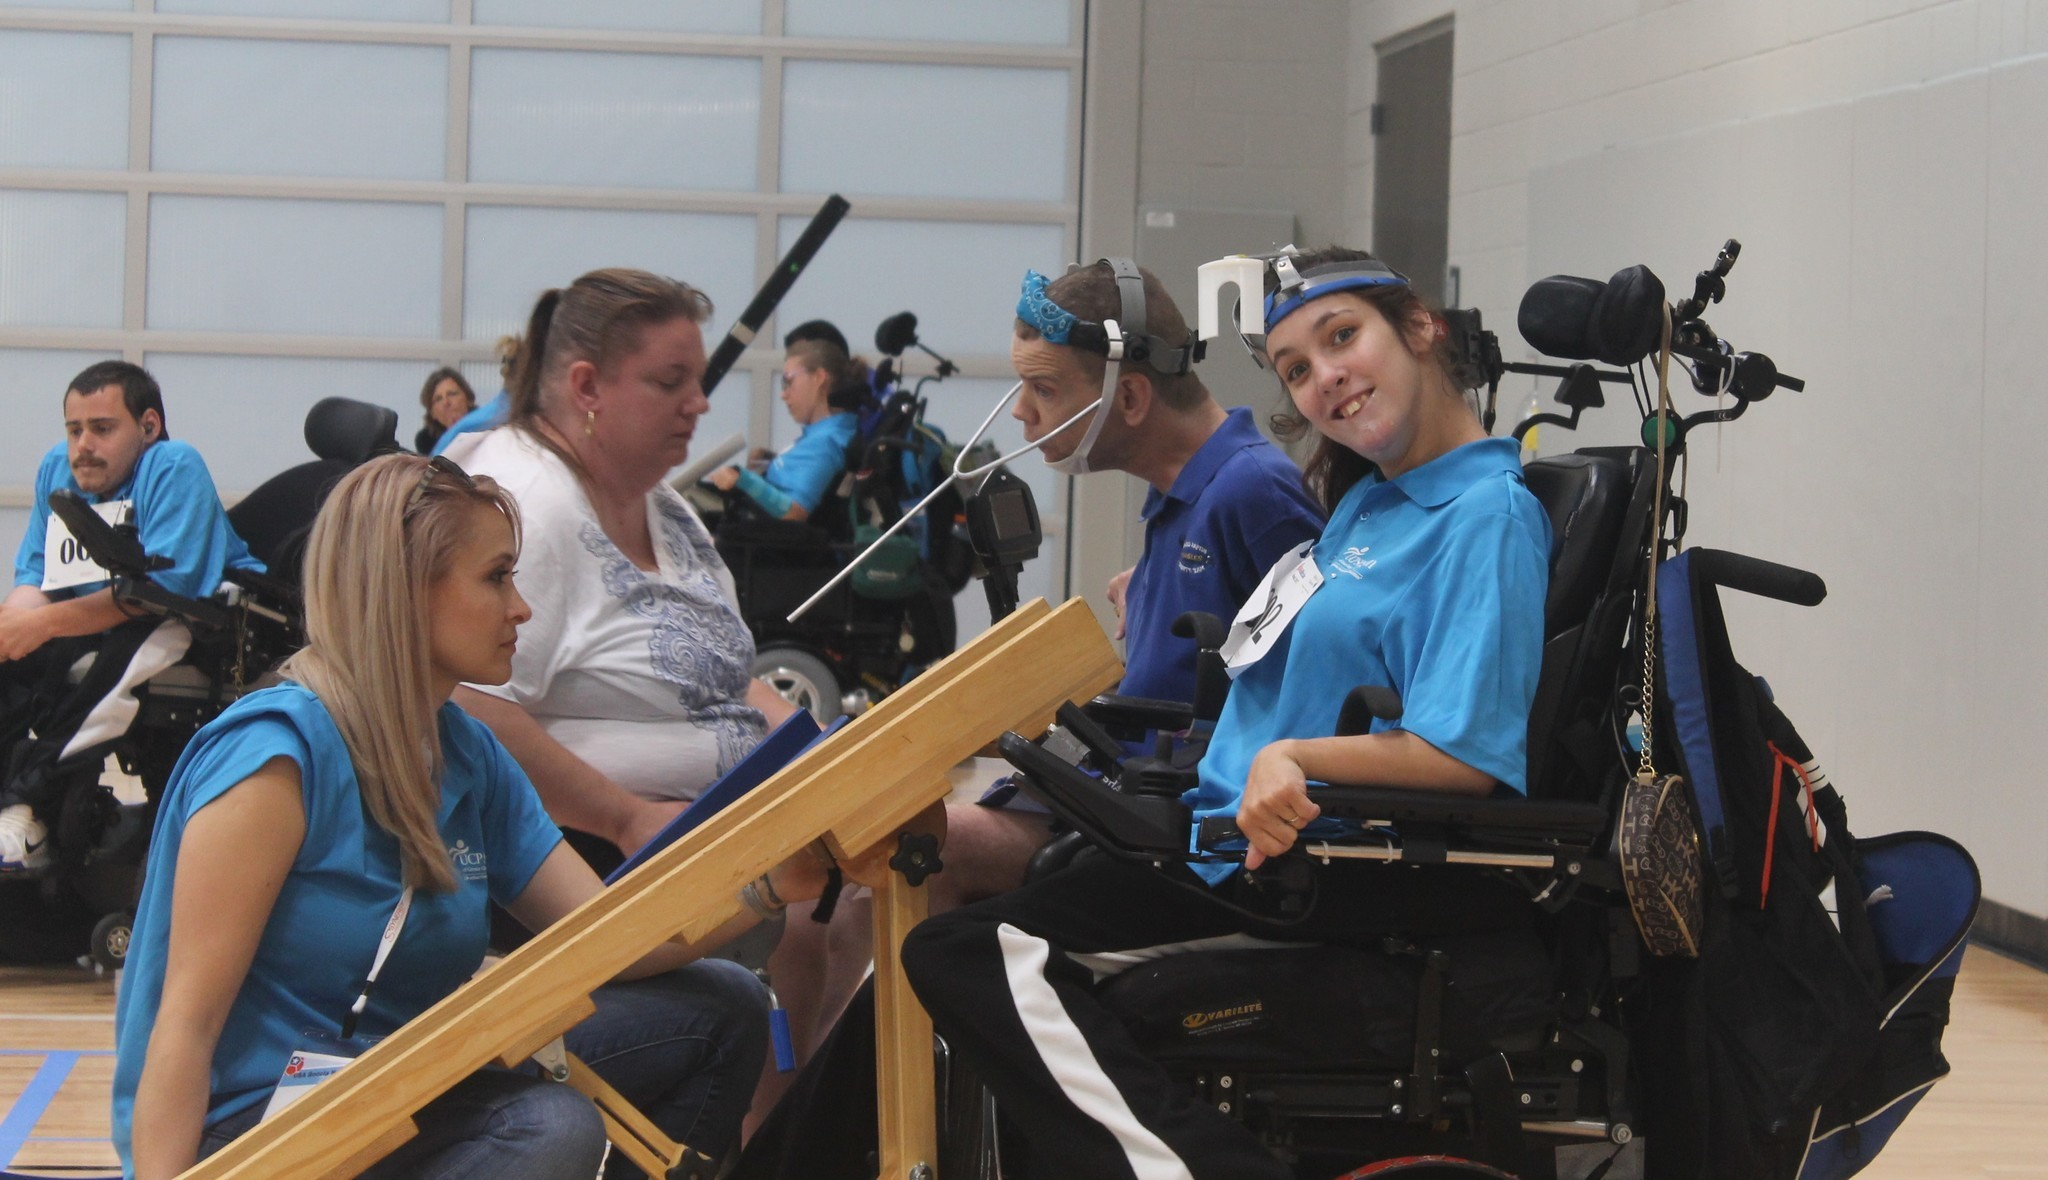 UCP Seguin of Greater Chicago Paralympics Athlete Headed To Argentina As Part Of...